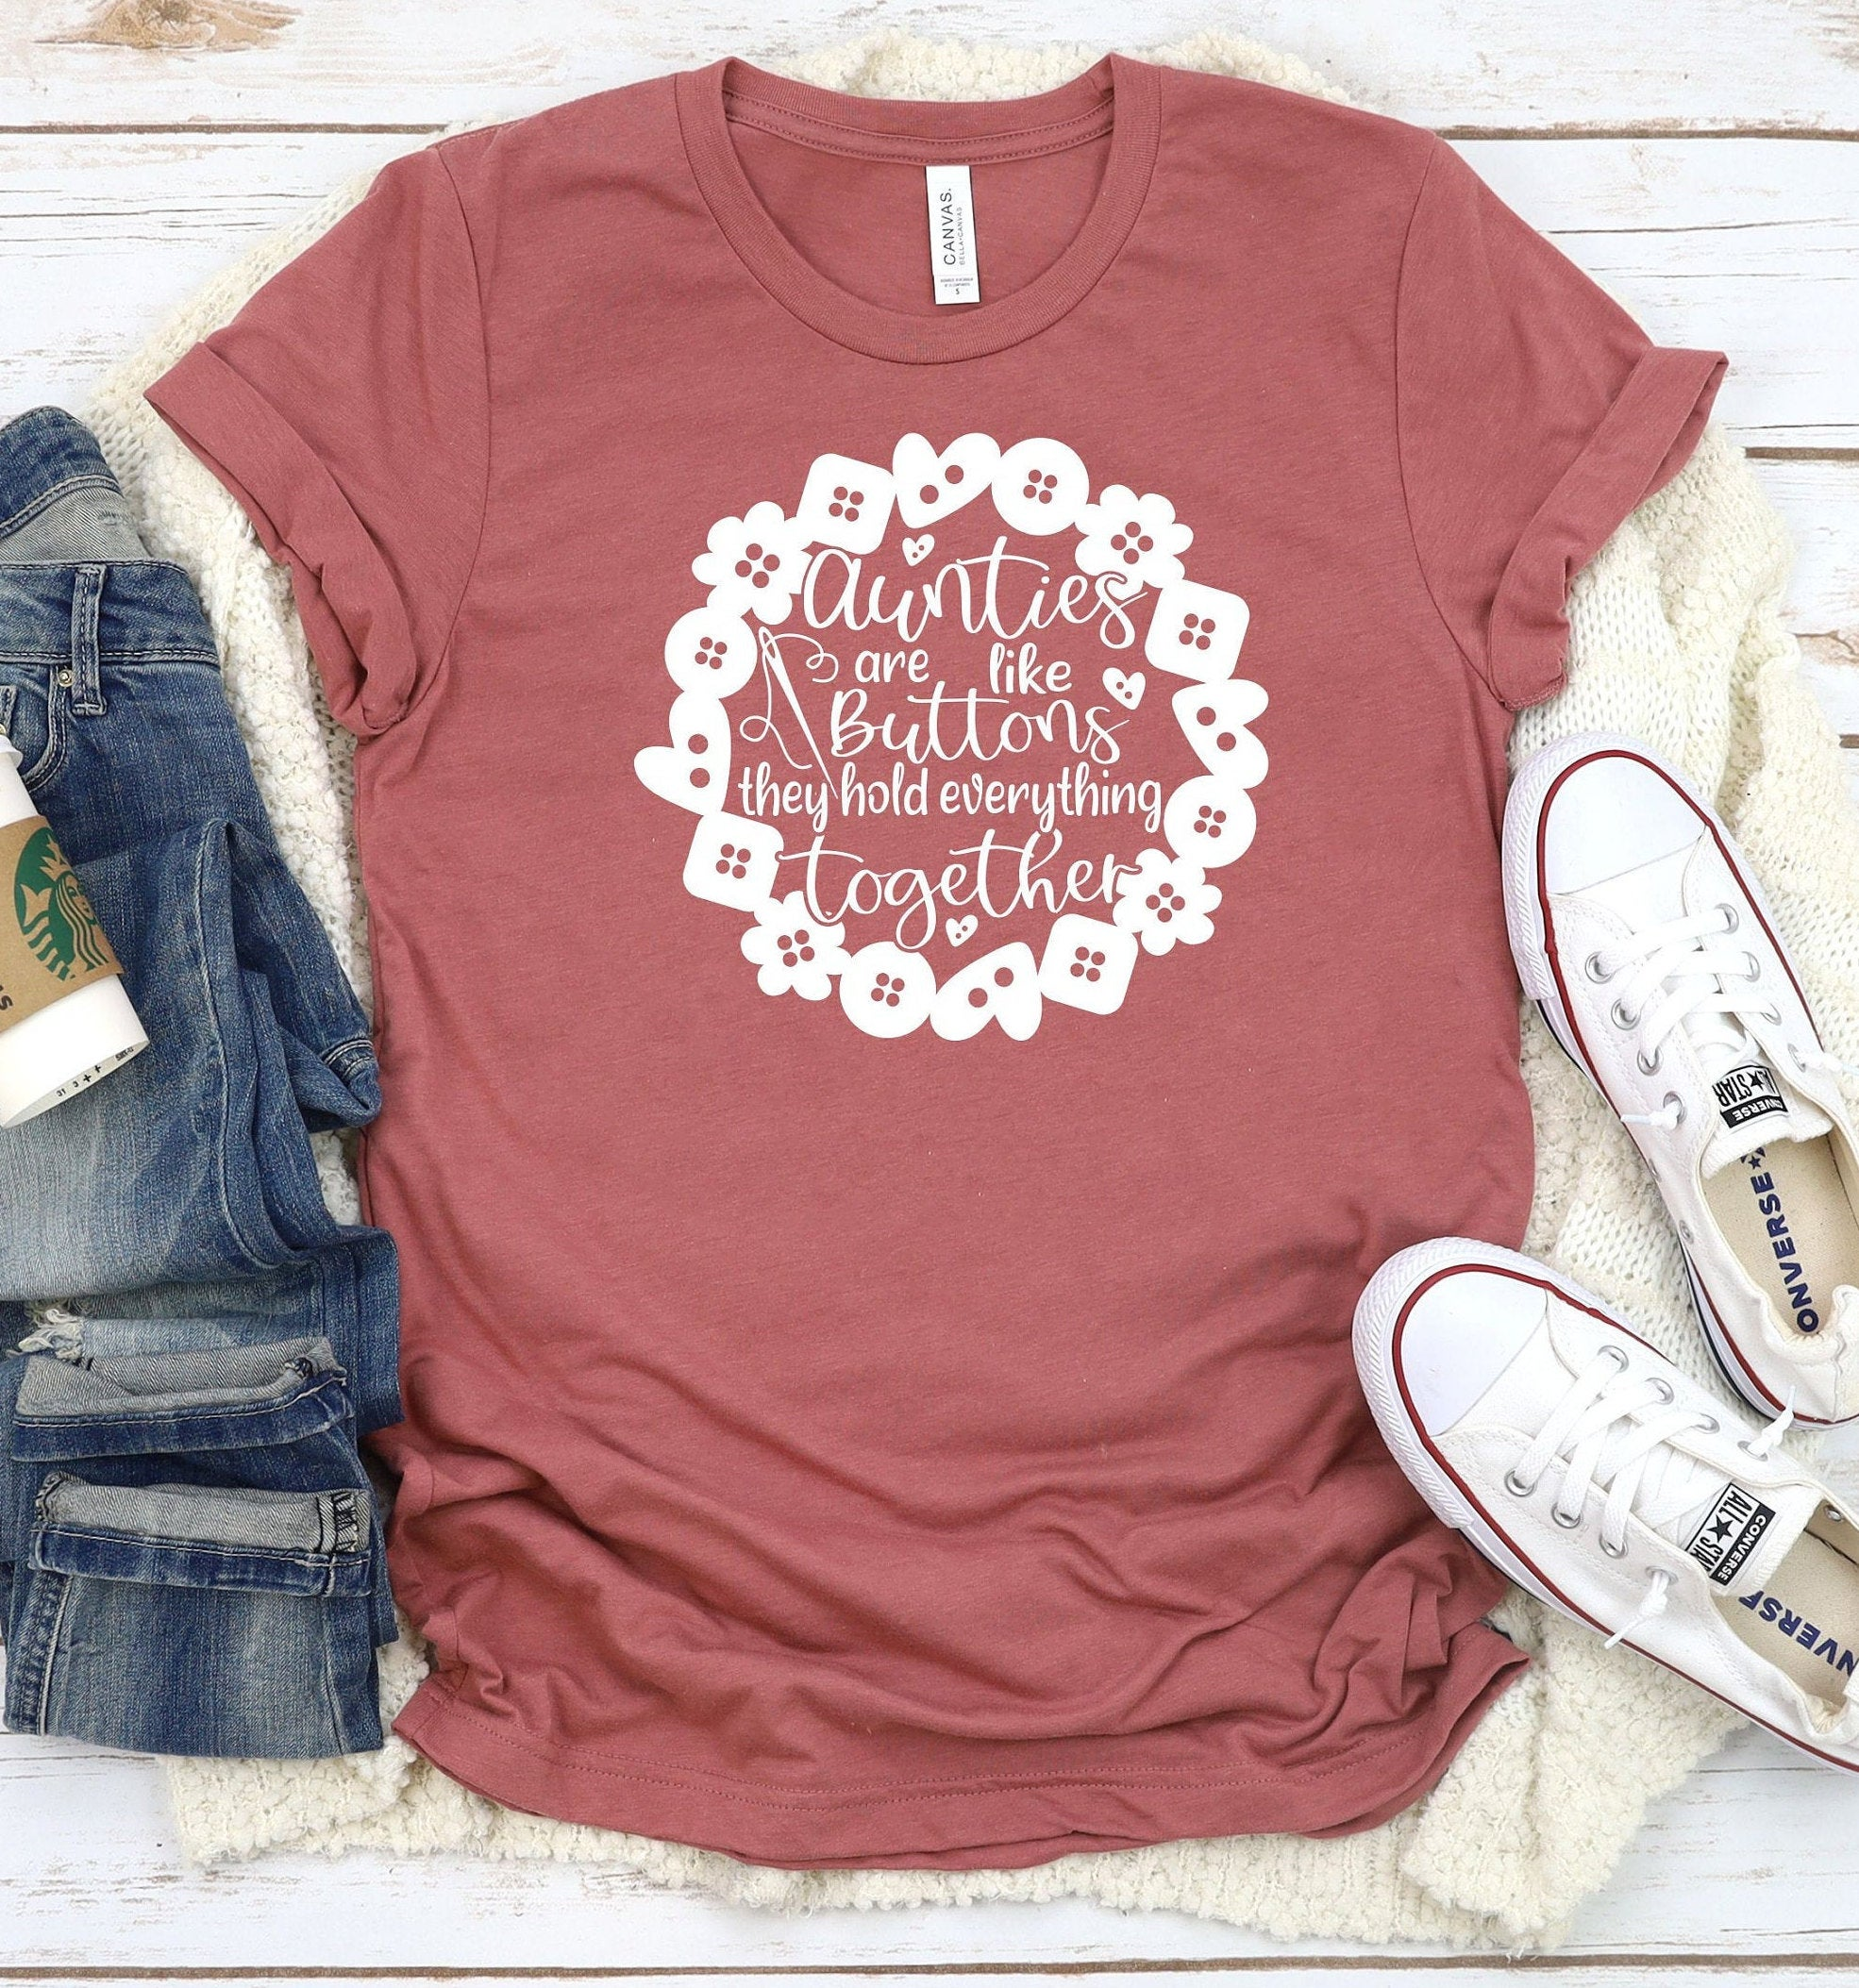 Aunties-are-like-buttons-svg-aunts-hold-everything-together-svg-motherhood-svg-mothers-day-svg-mom-quote-svg-mothers-day-svg-design-605139d1